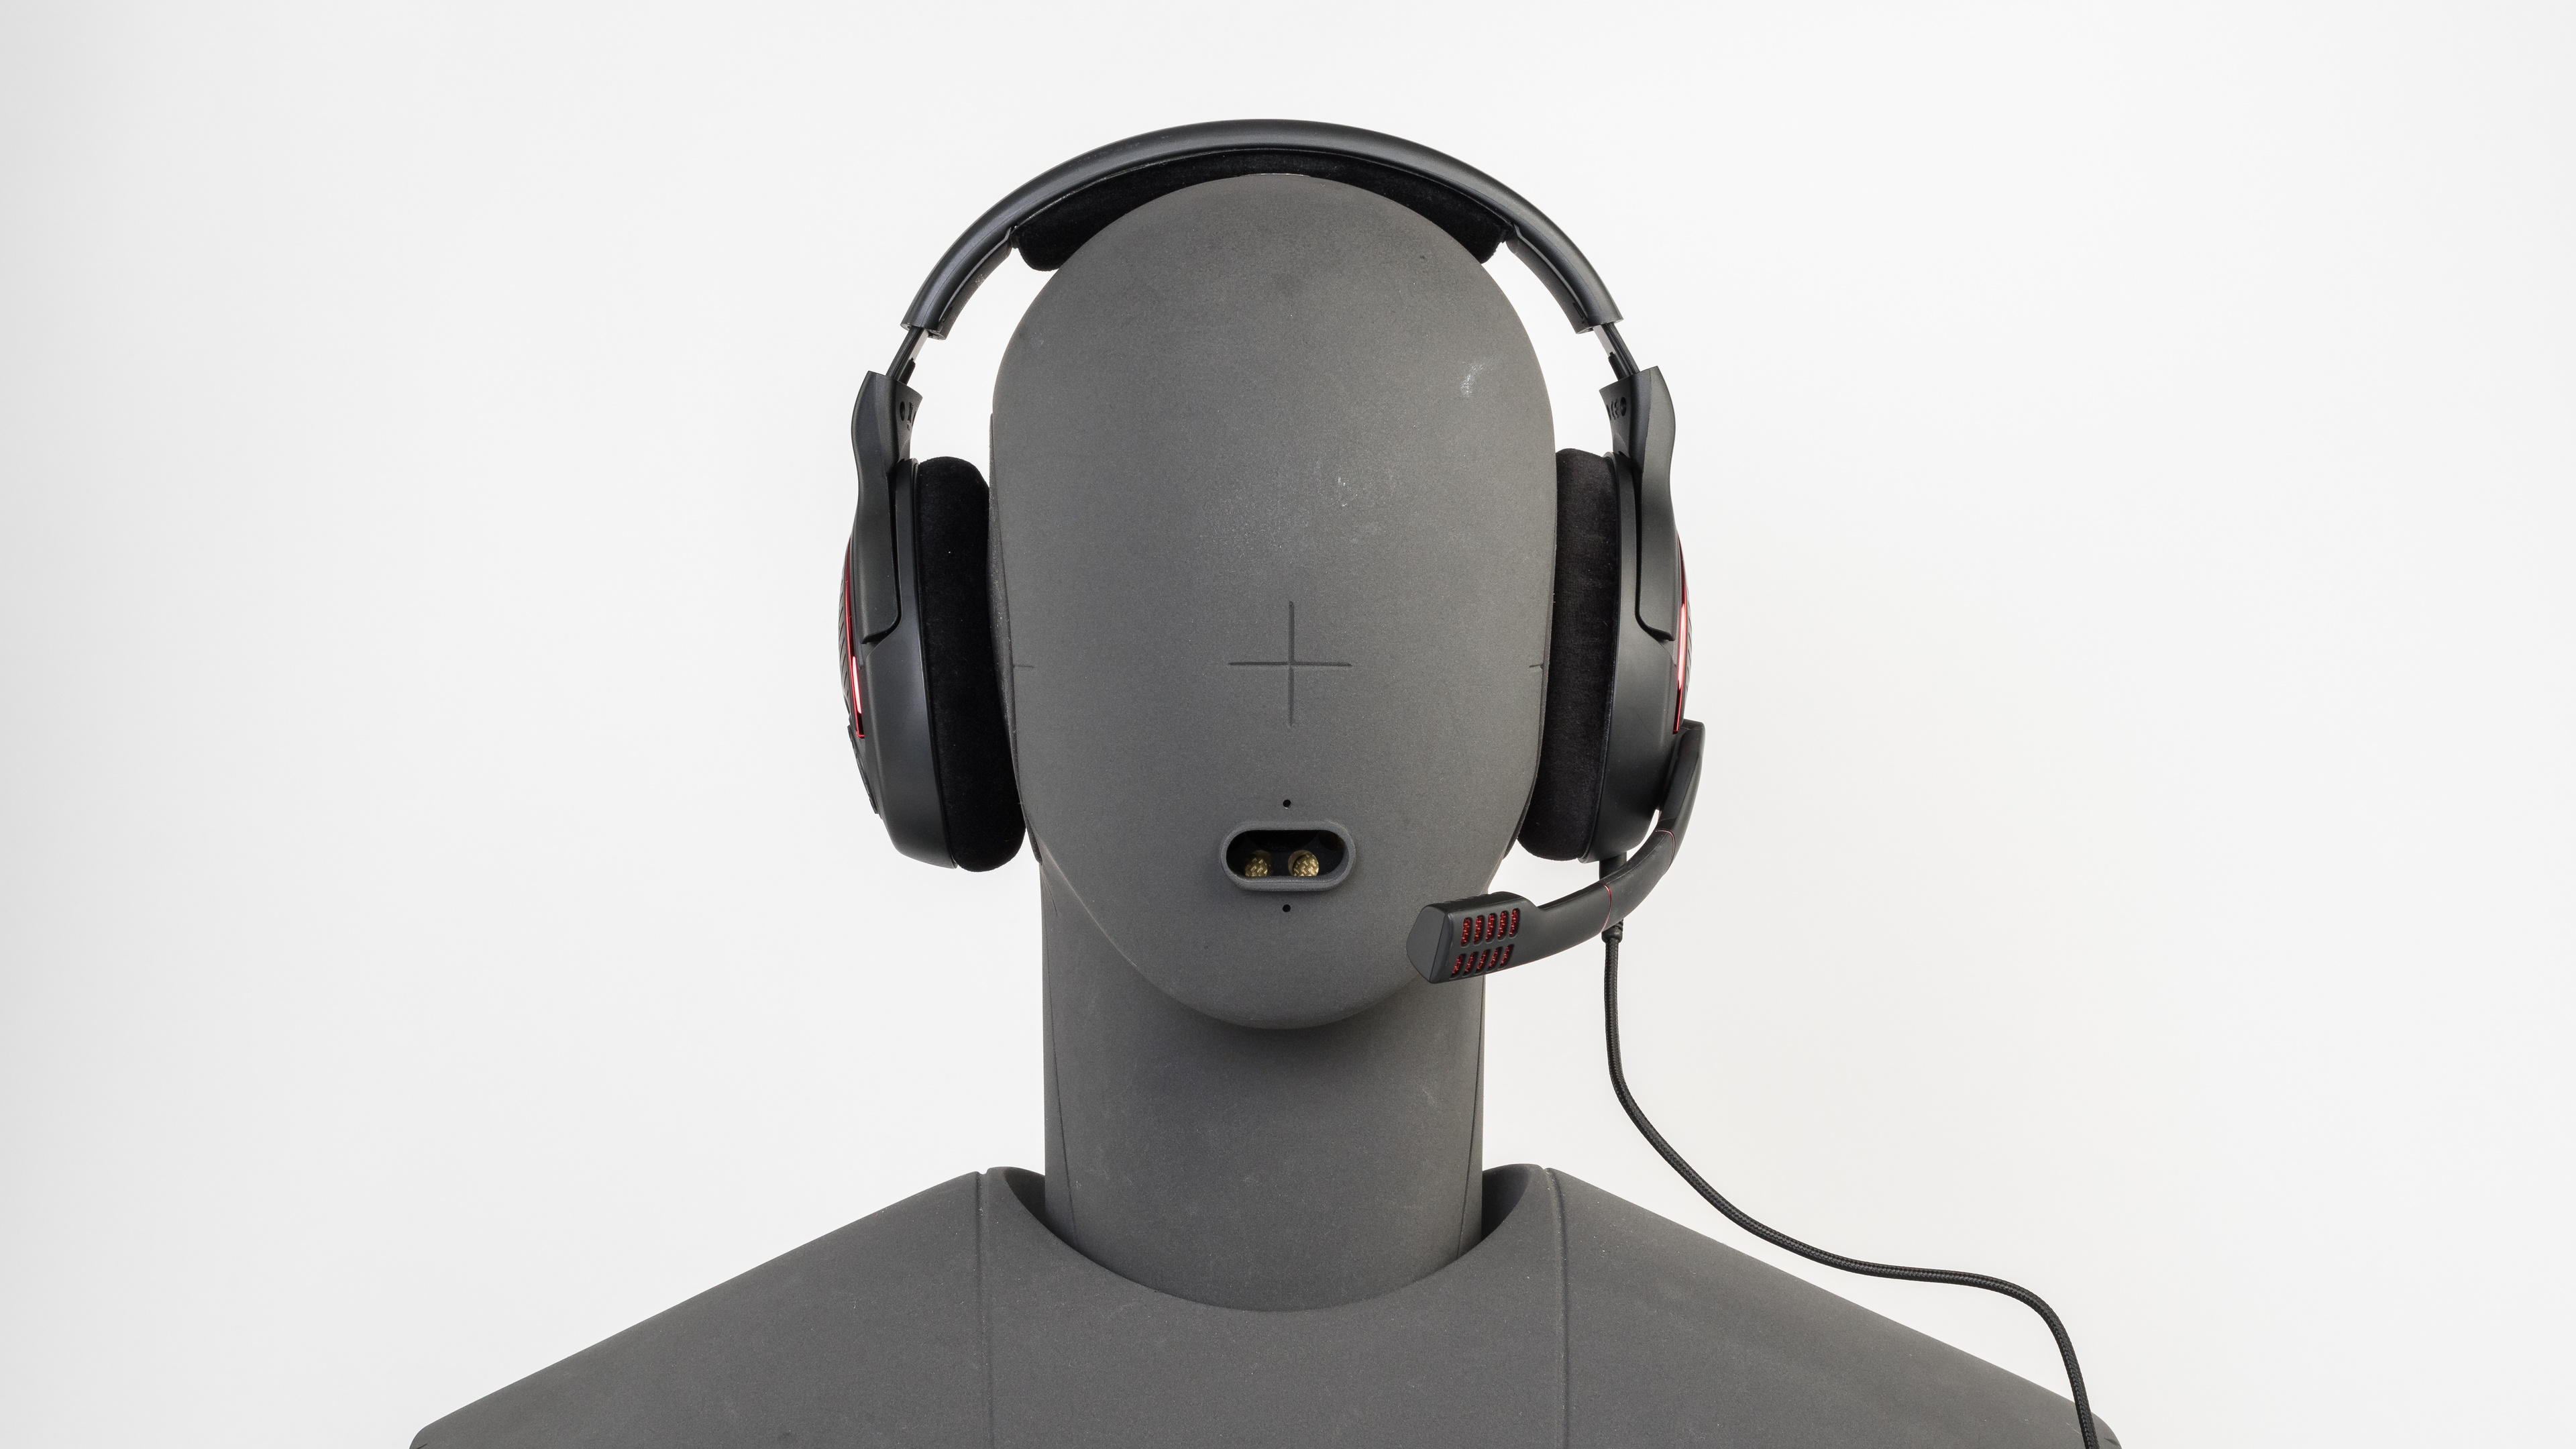 Sennheiser Game One G4me One Gaming Headset Review